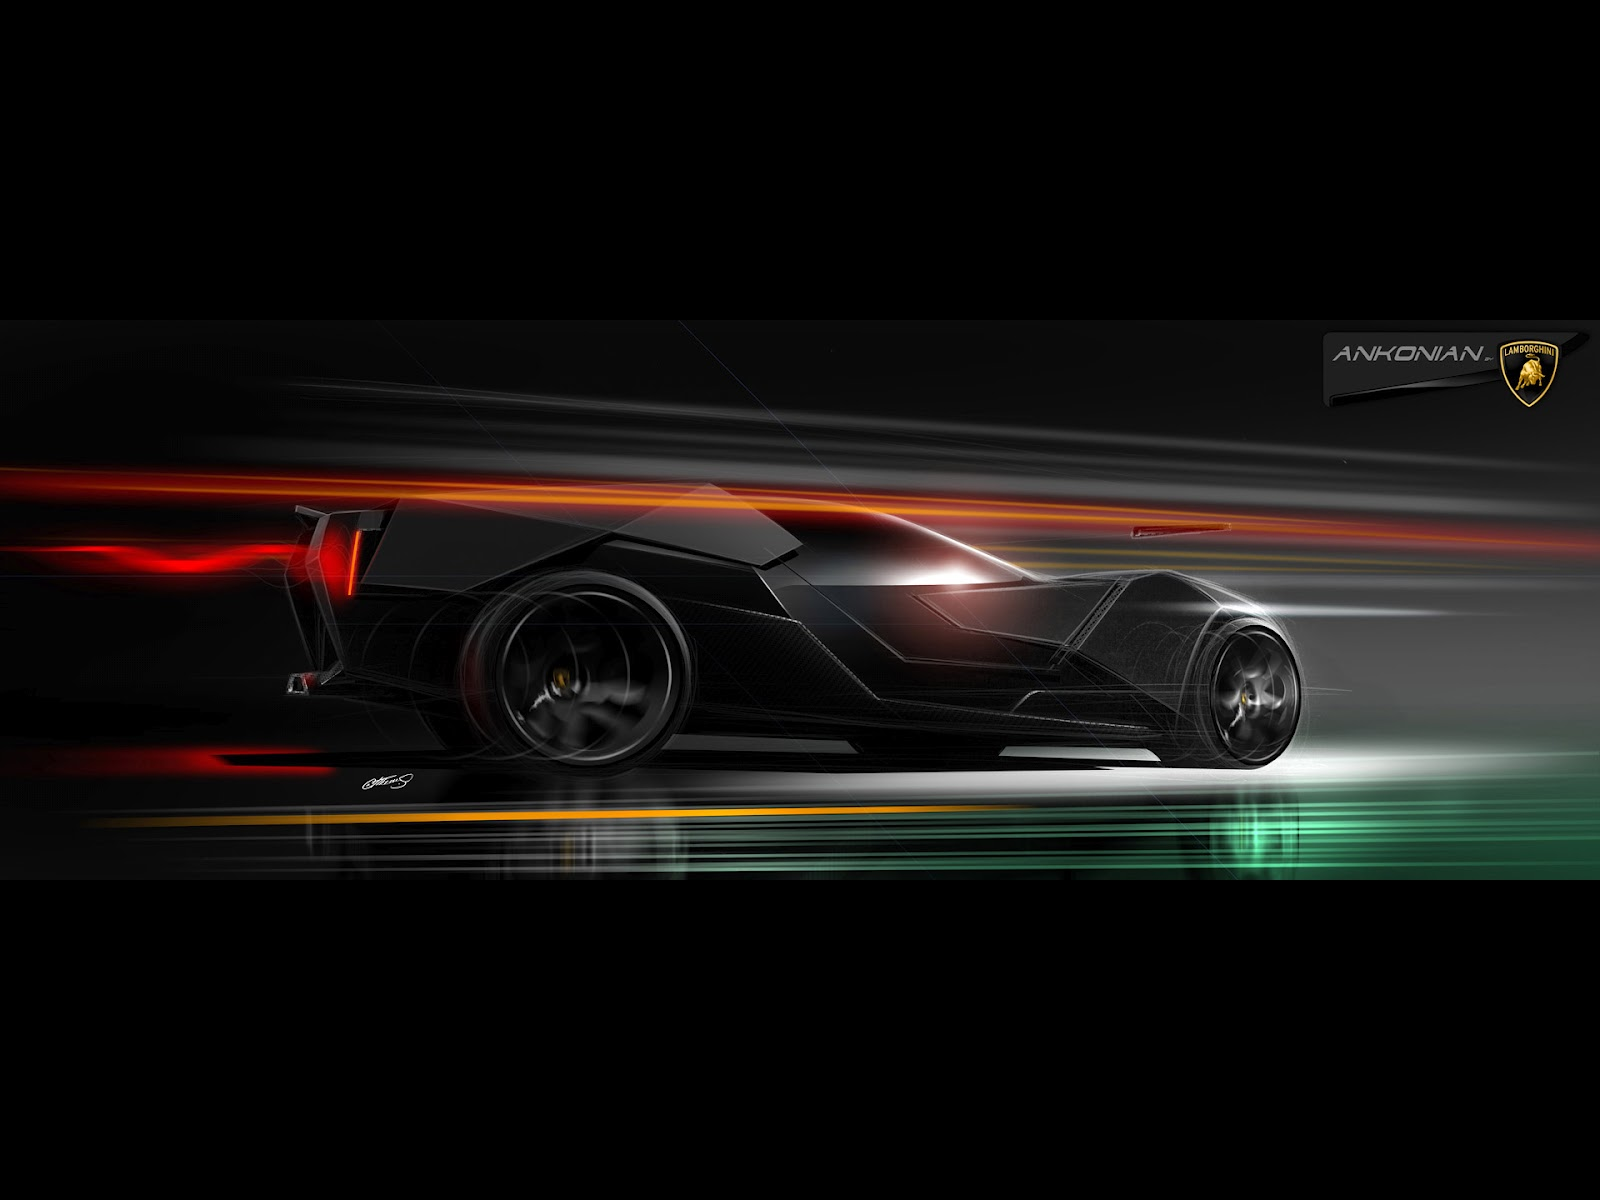 Design Concepts Wallpaper : Lamborghini ankonian concept car hd wallpapers high